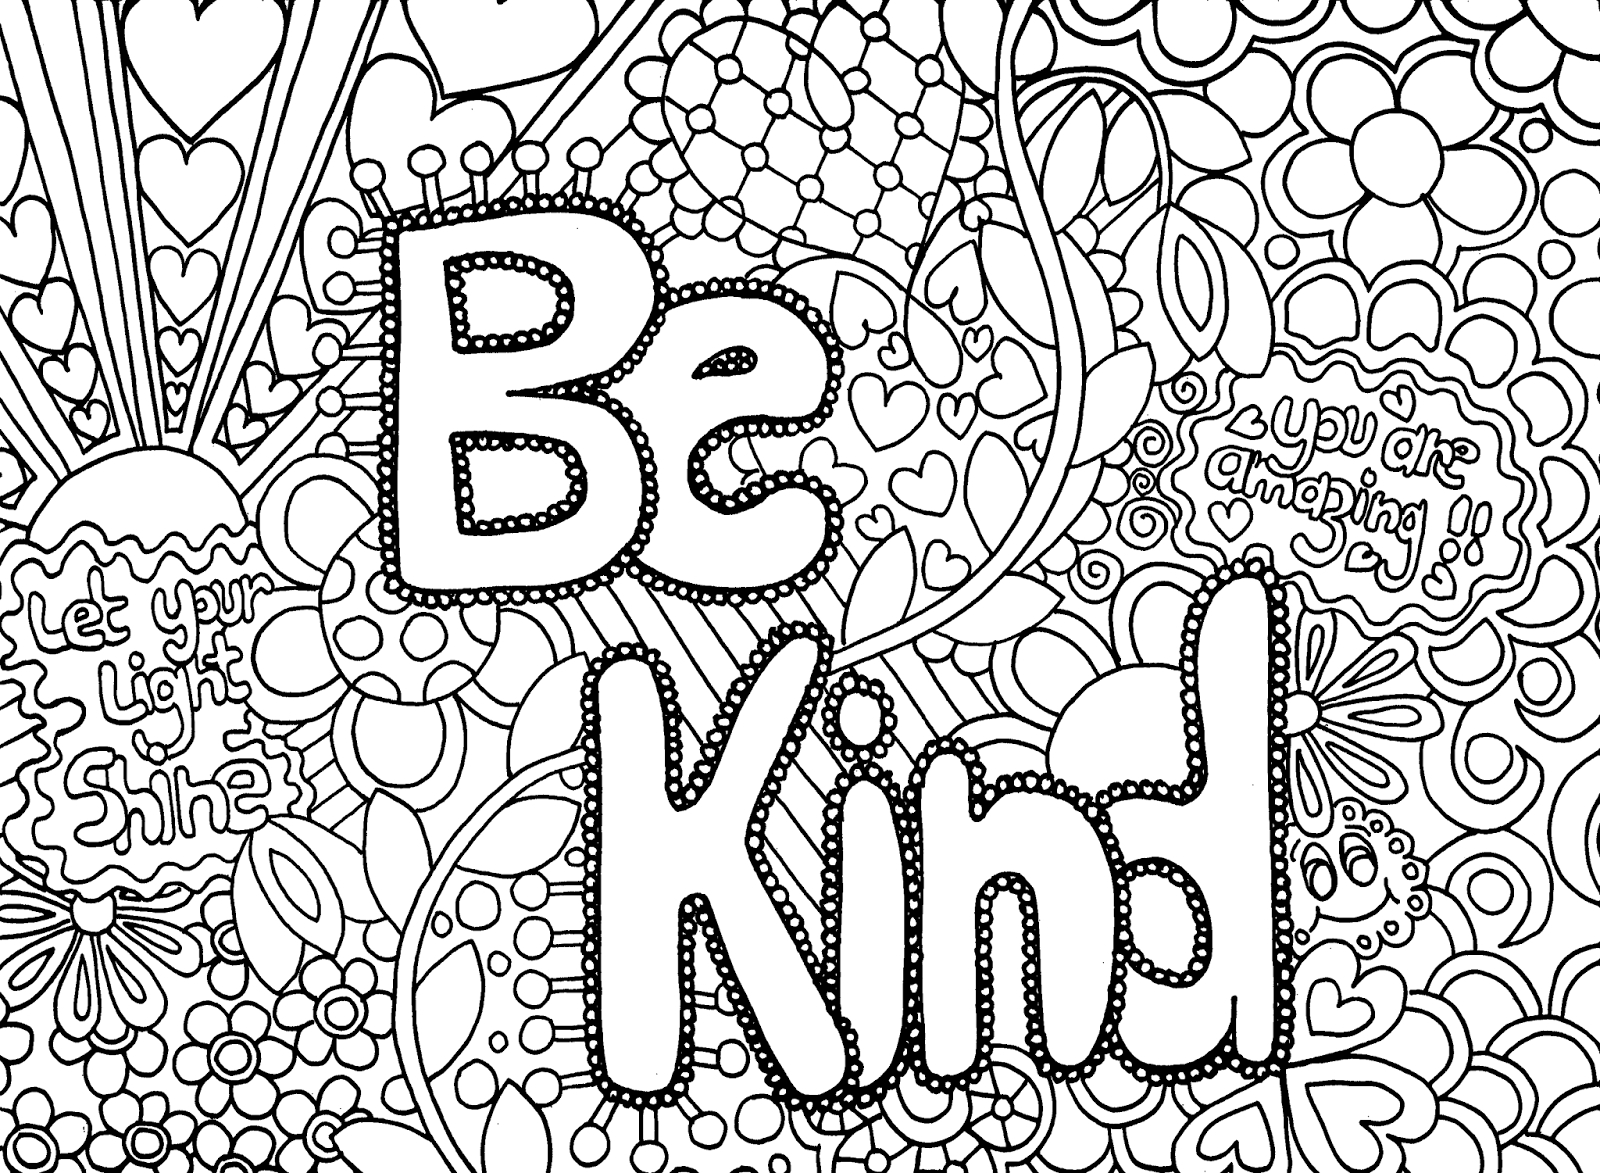 coloring pages for tweens - 2188